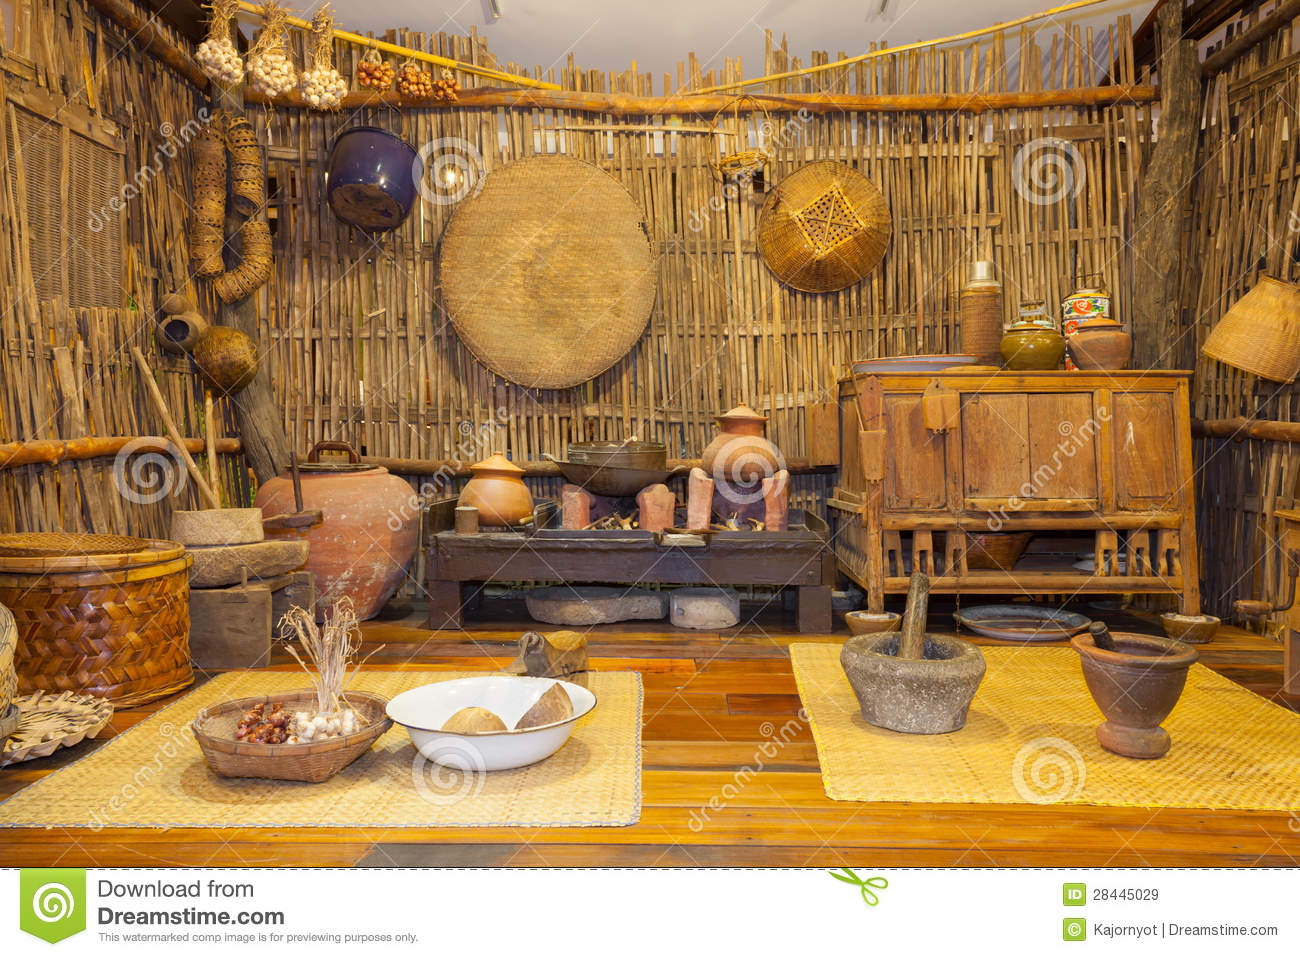 Thai Kitchen Traditional Ancient Thai Kitchen Display Royalty Free Stock Images